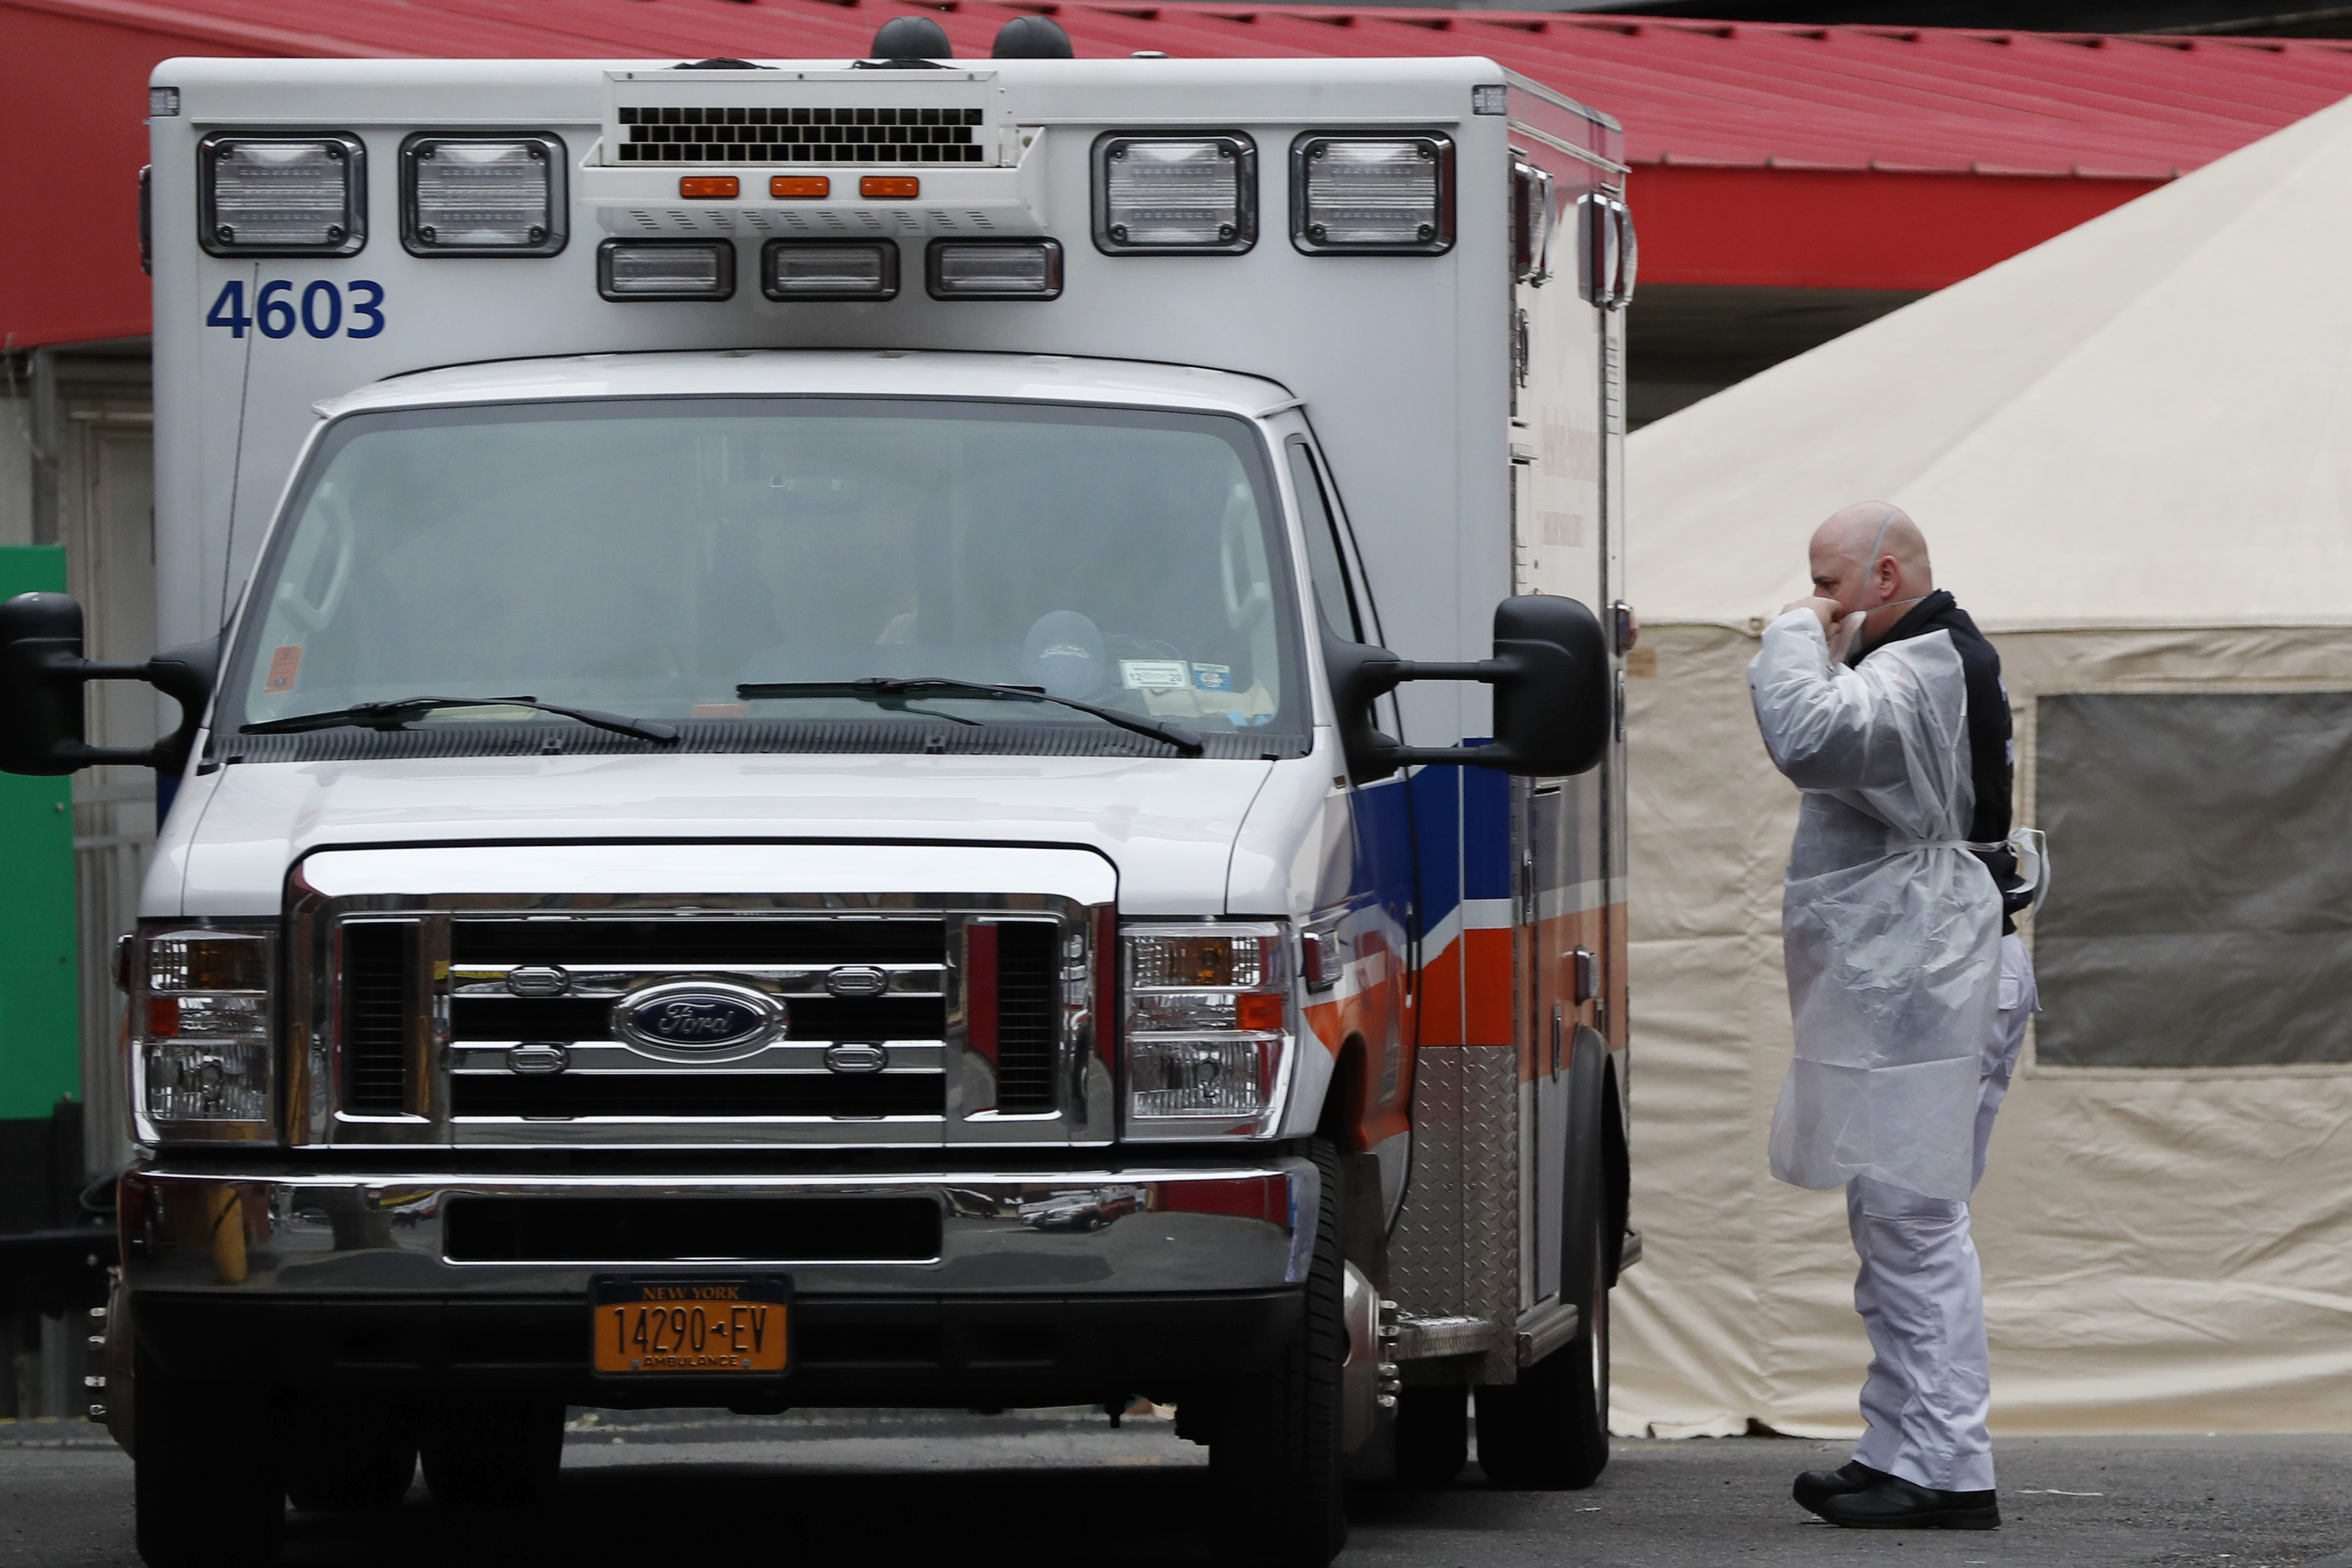 An ambulance attendant adjusts his face mask before transferring a patient to the emergency department of Elmhurst Hospital Center in New York on March 28.